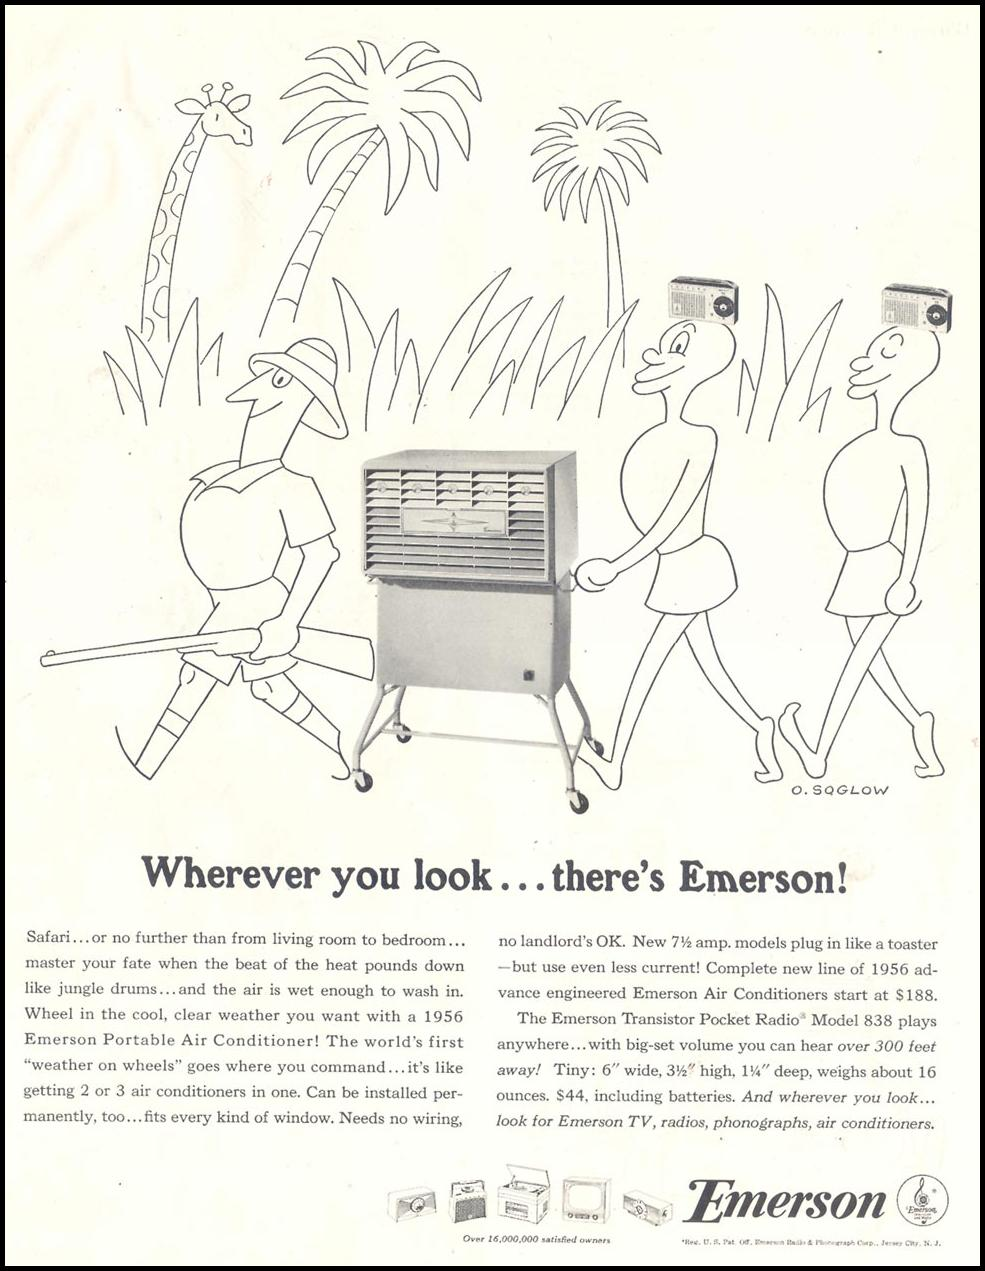 EMERSON APPLIANCES SATURDAY EVENING POST 12/10/1955 p. 56